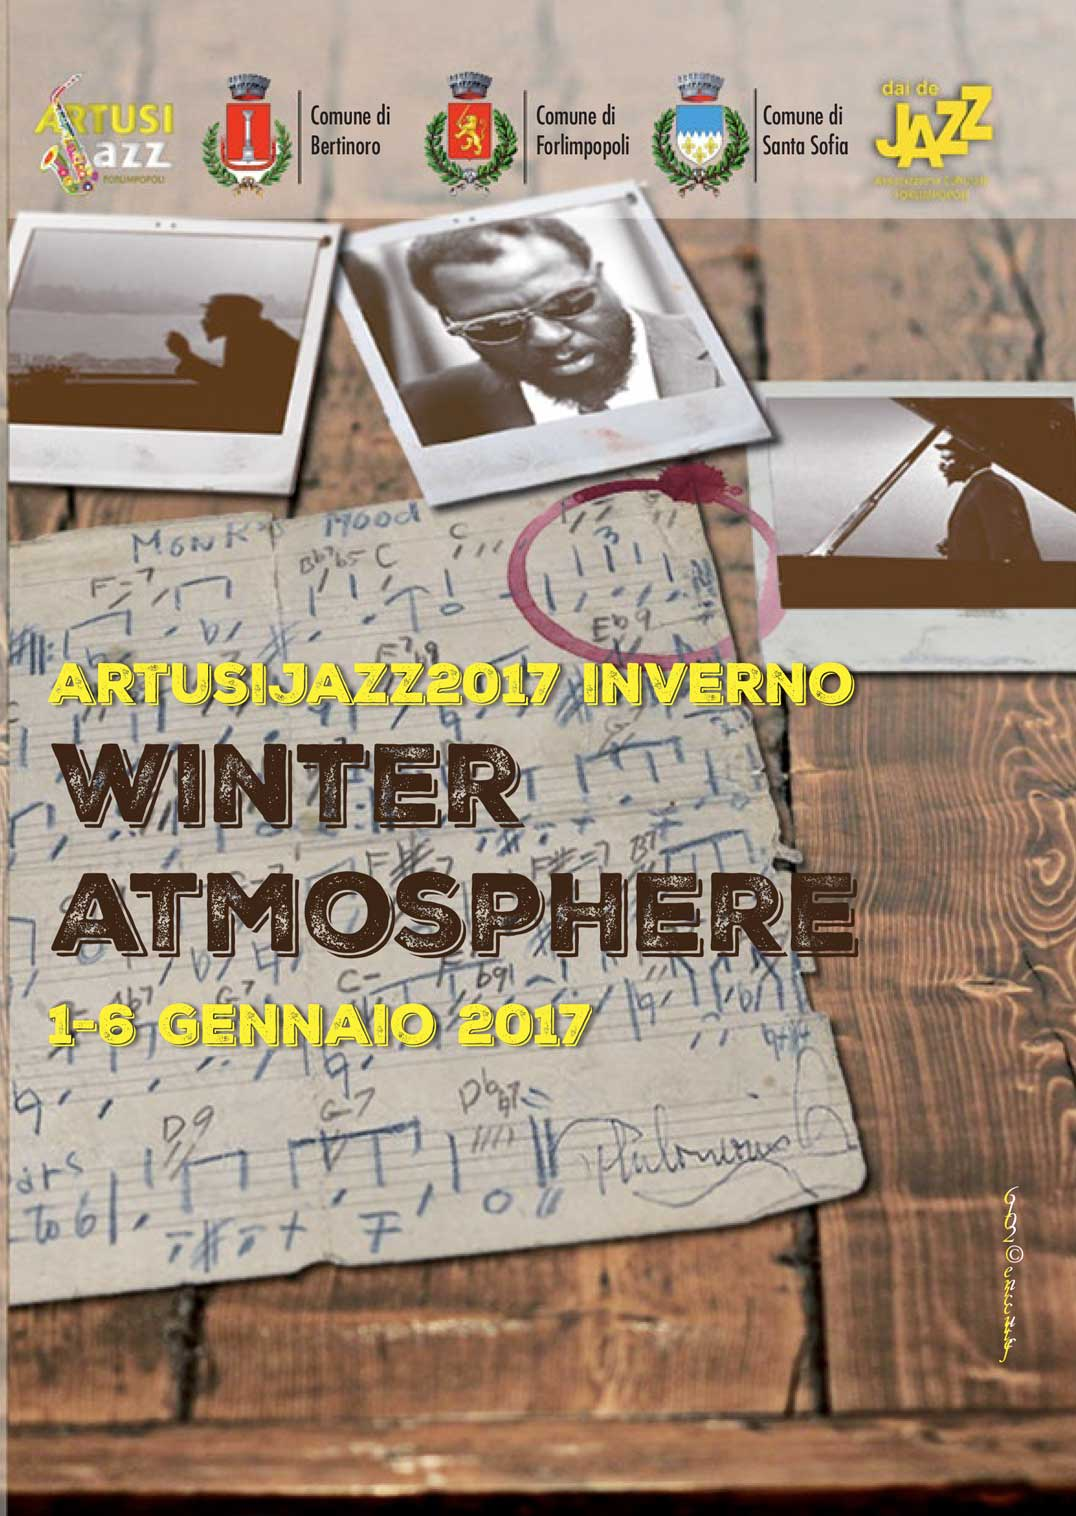 artusi jazz 2017 inverno winter atmosphere